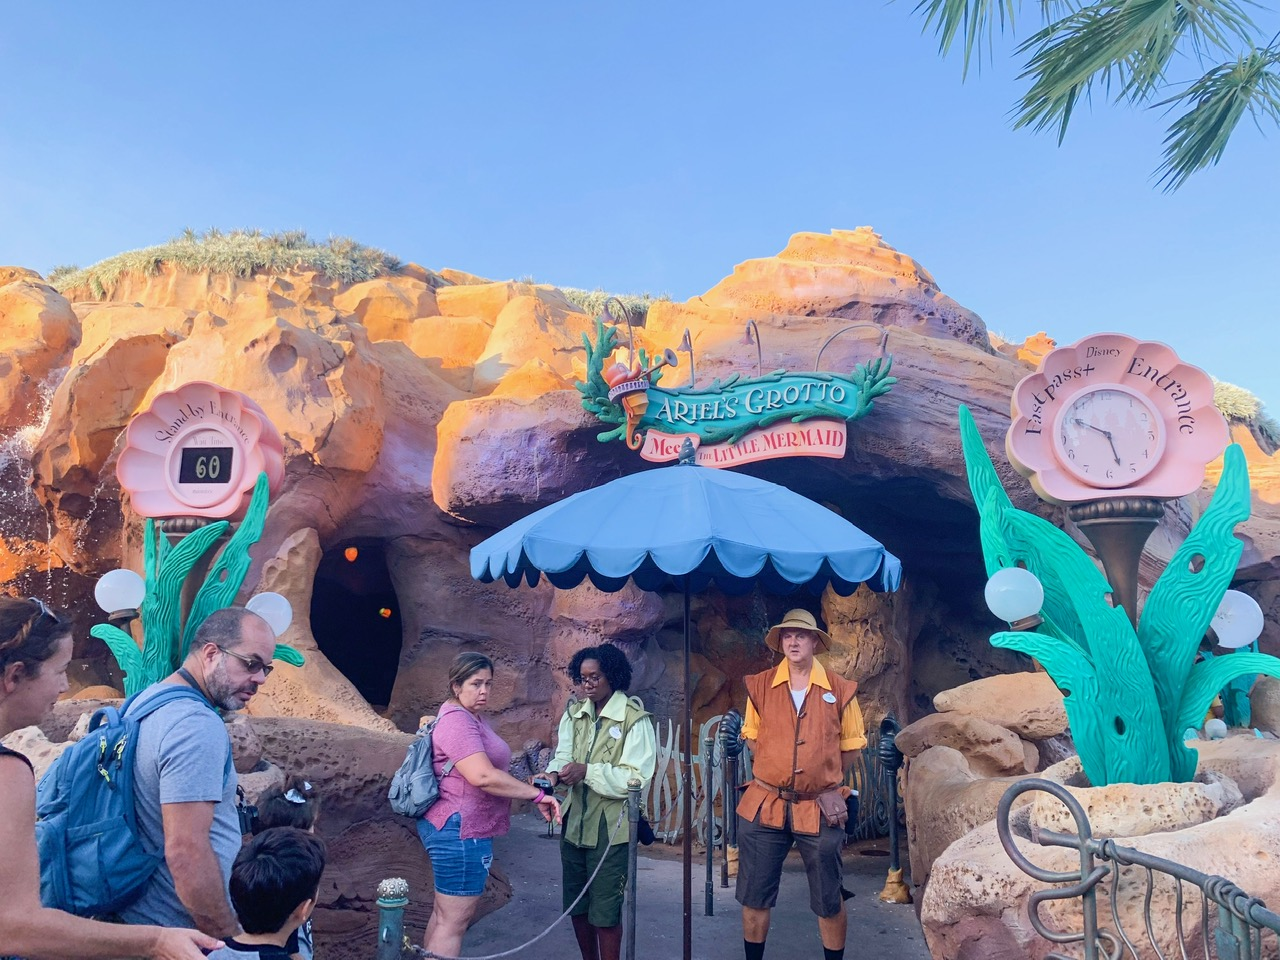 Ariel's Grotto Meet and Greet at Magic Kingdom is a great Fastpass option